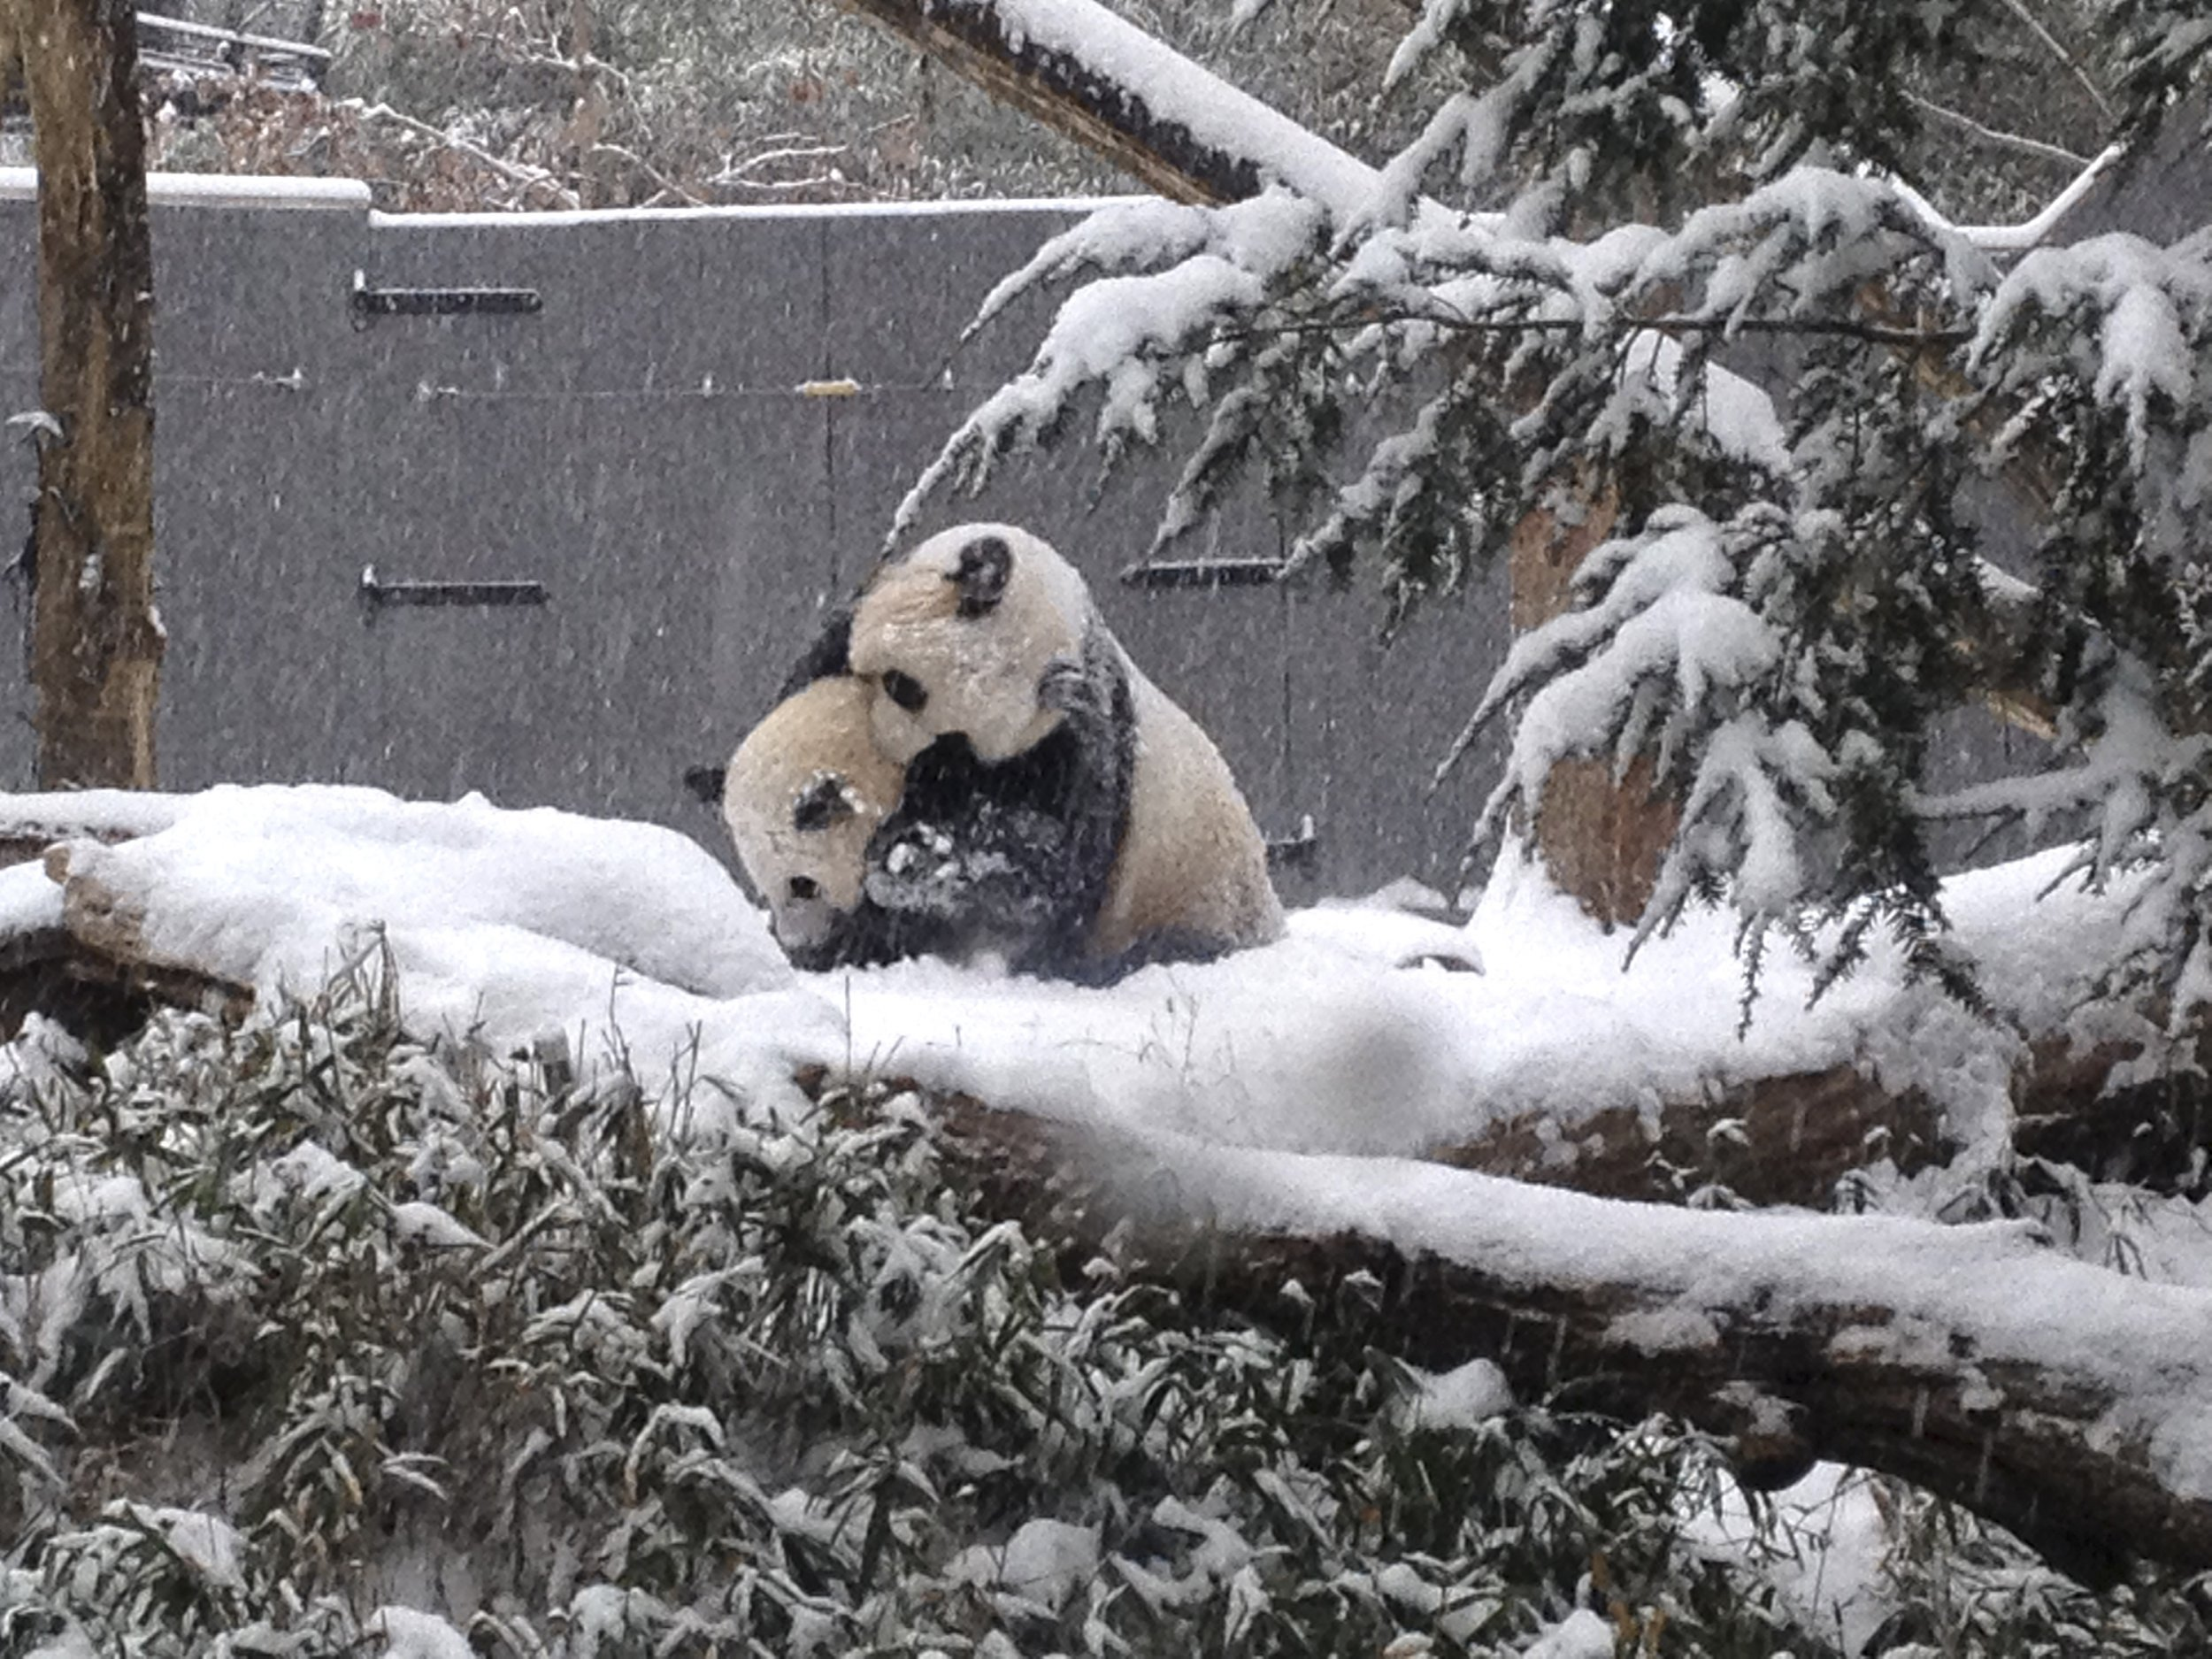 Tian Tian the Panda Revels in Snow in BlizzardInundated